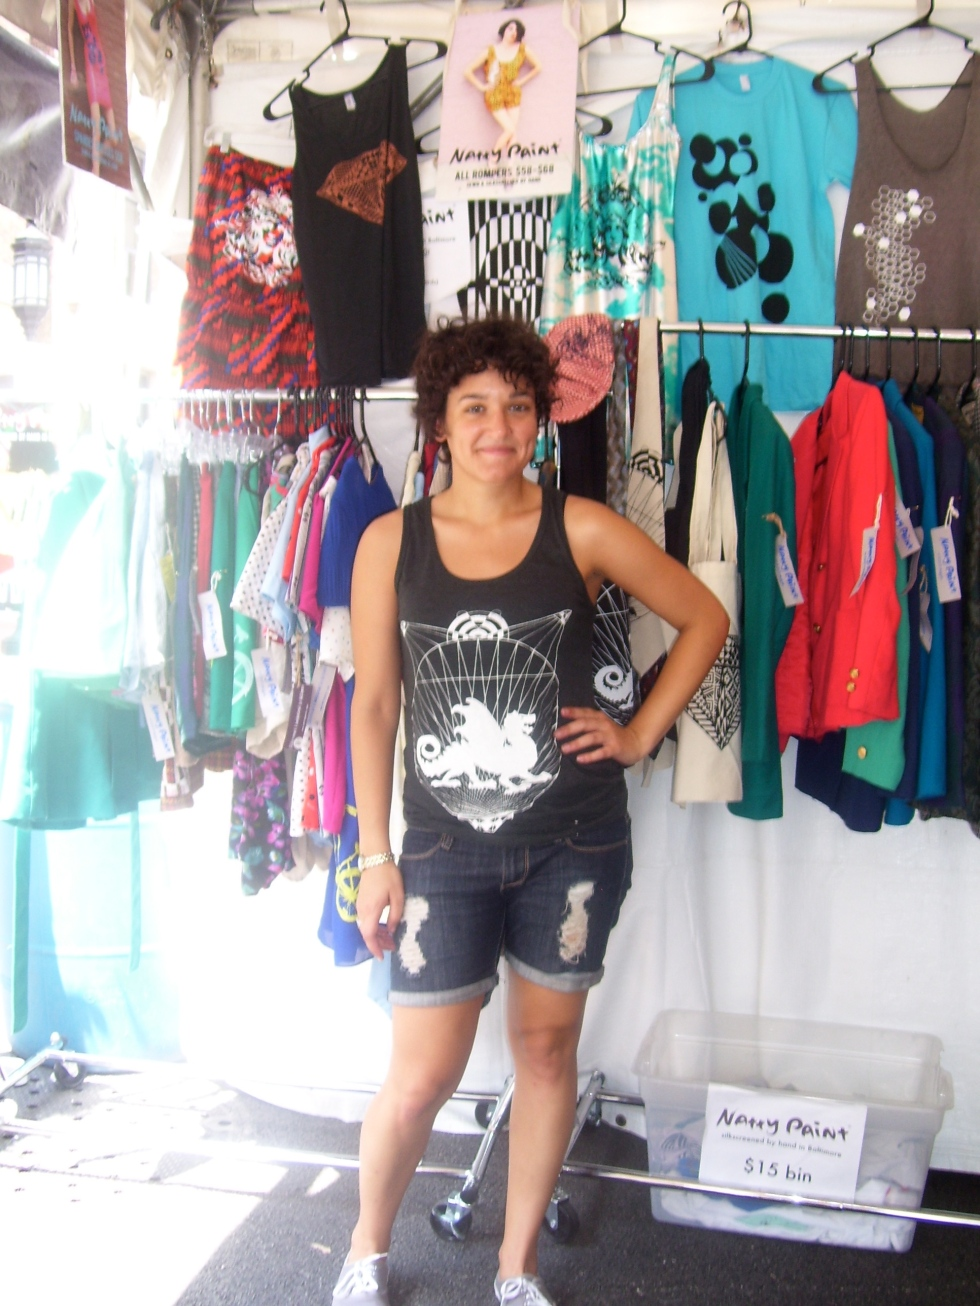 Emily Li Mandri rockin' Natty Paint in her booth at Artscape.